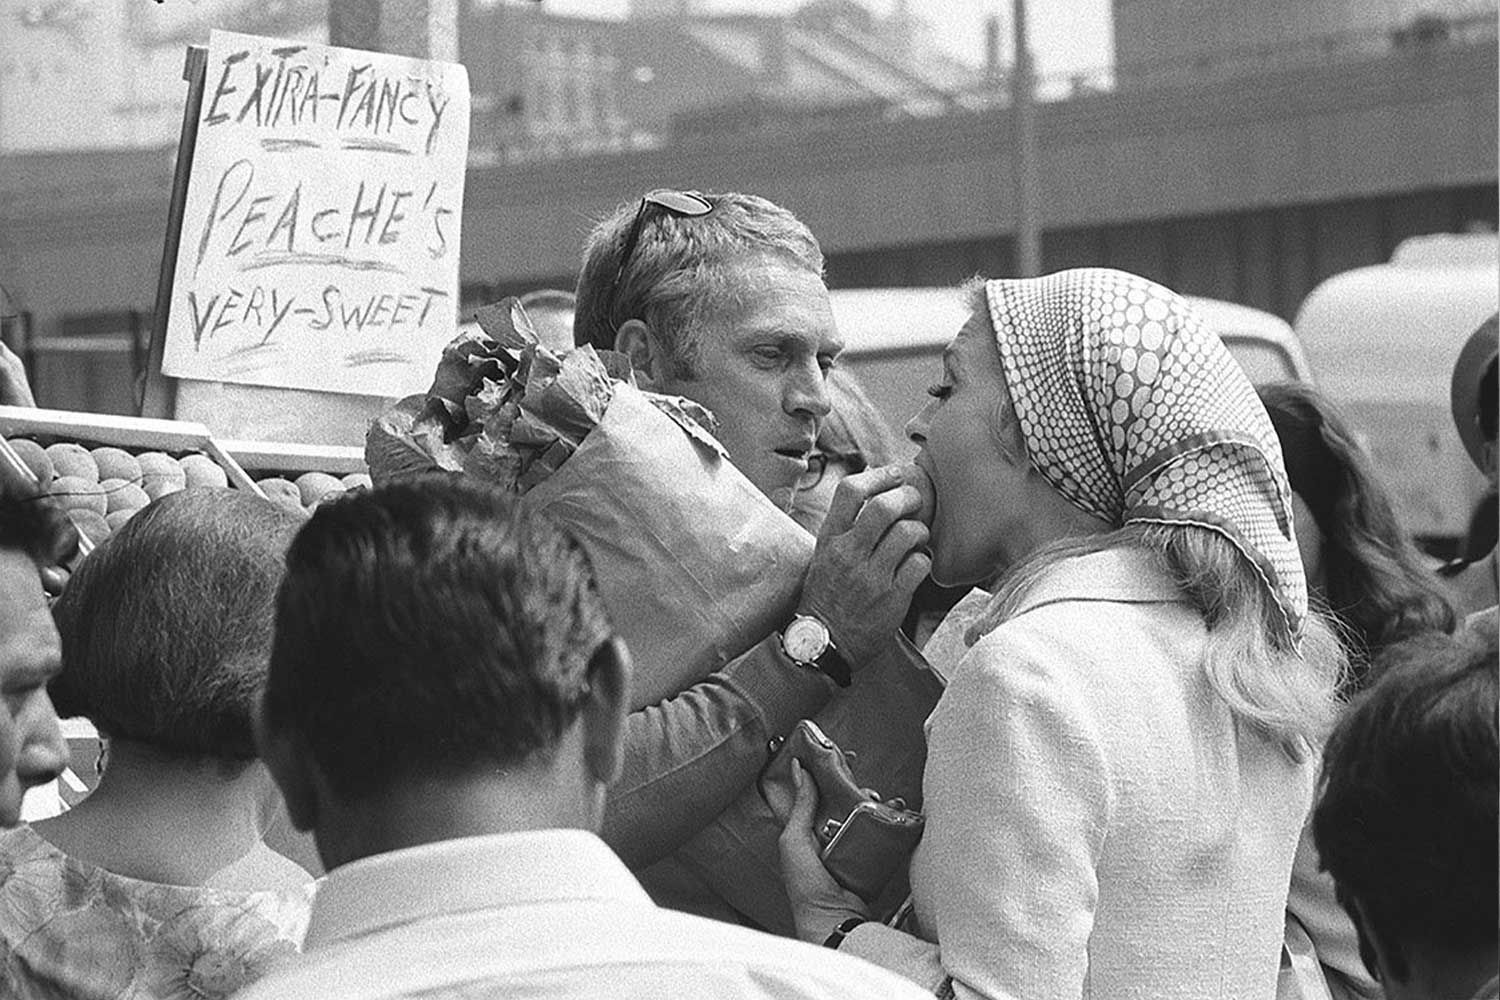 Steve McQueen (1930 - 1980) feeds a peach to actress Faye Dunaway in the street market during filming of 'The Thomas Crown Affair' — on his wrist the Memovox that appears on screen on his wrist (directed by Norman Jewison), Boston, Massachusetts, August 11, 1967. (Photo by Jerry Schatzberg/Getty Images)